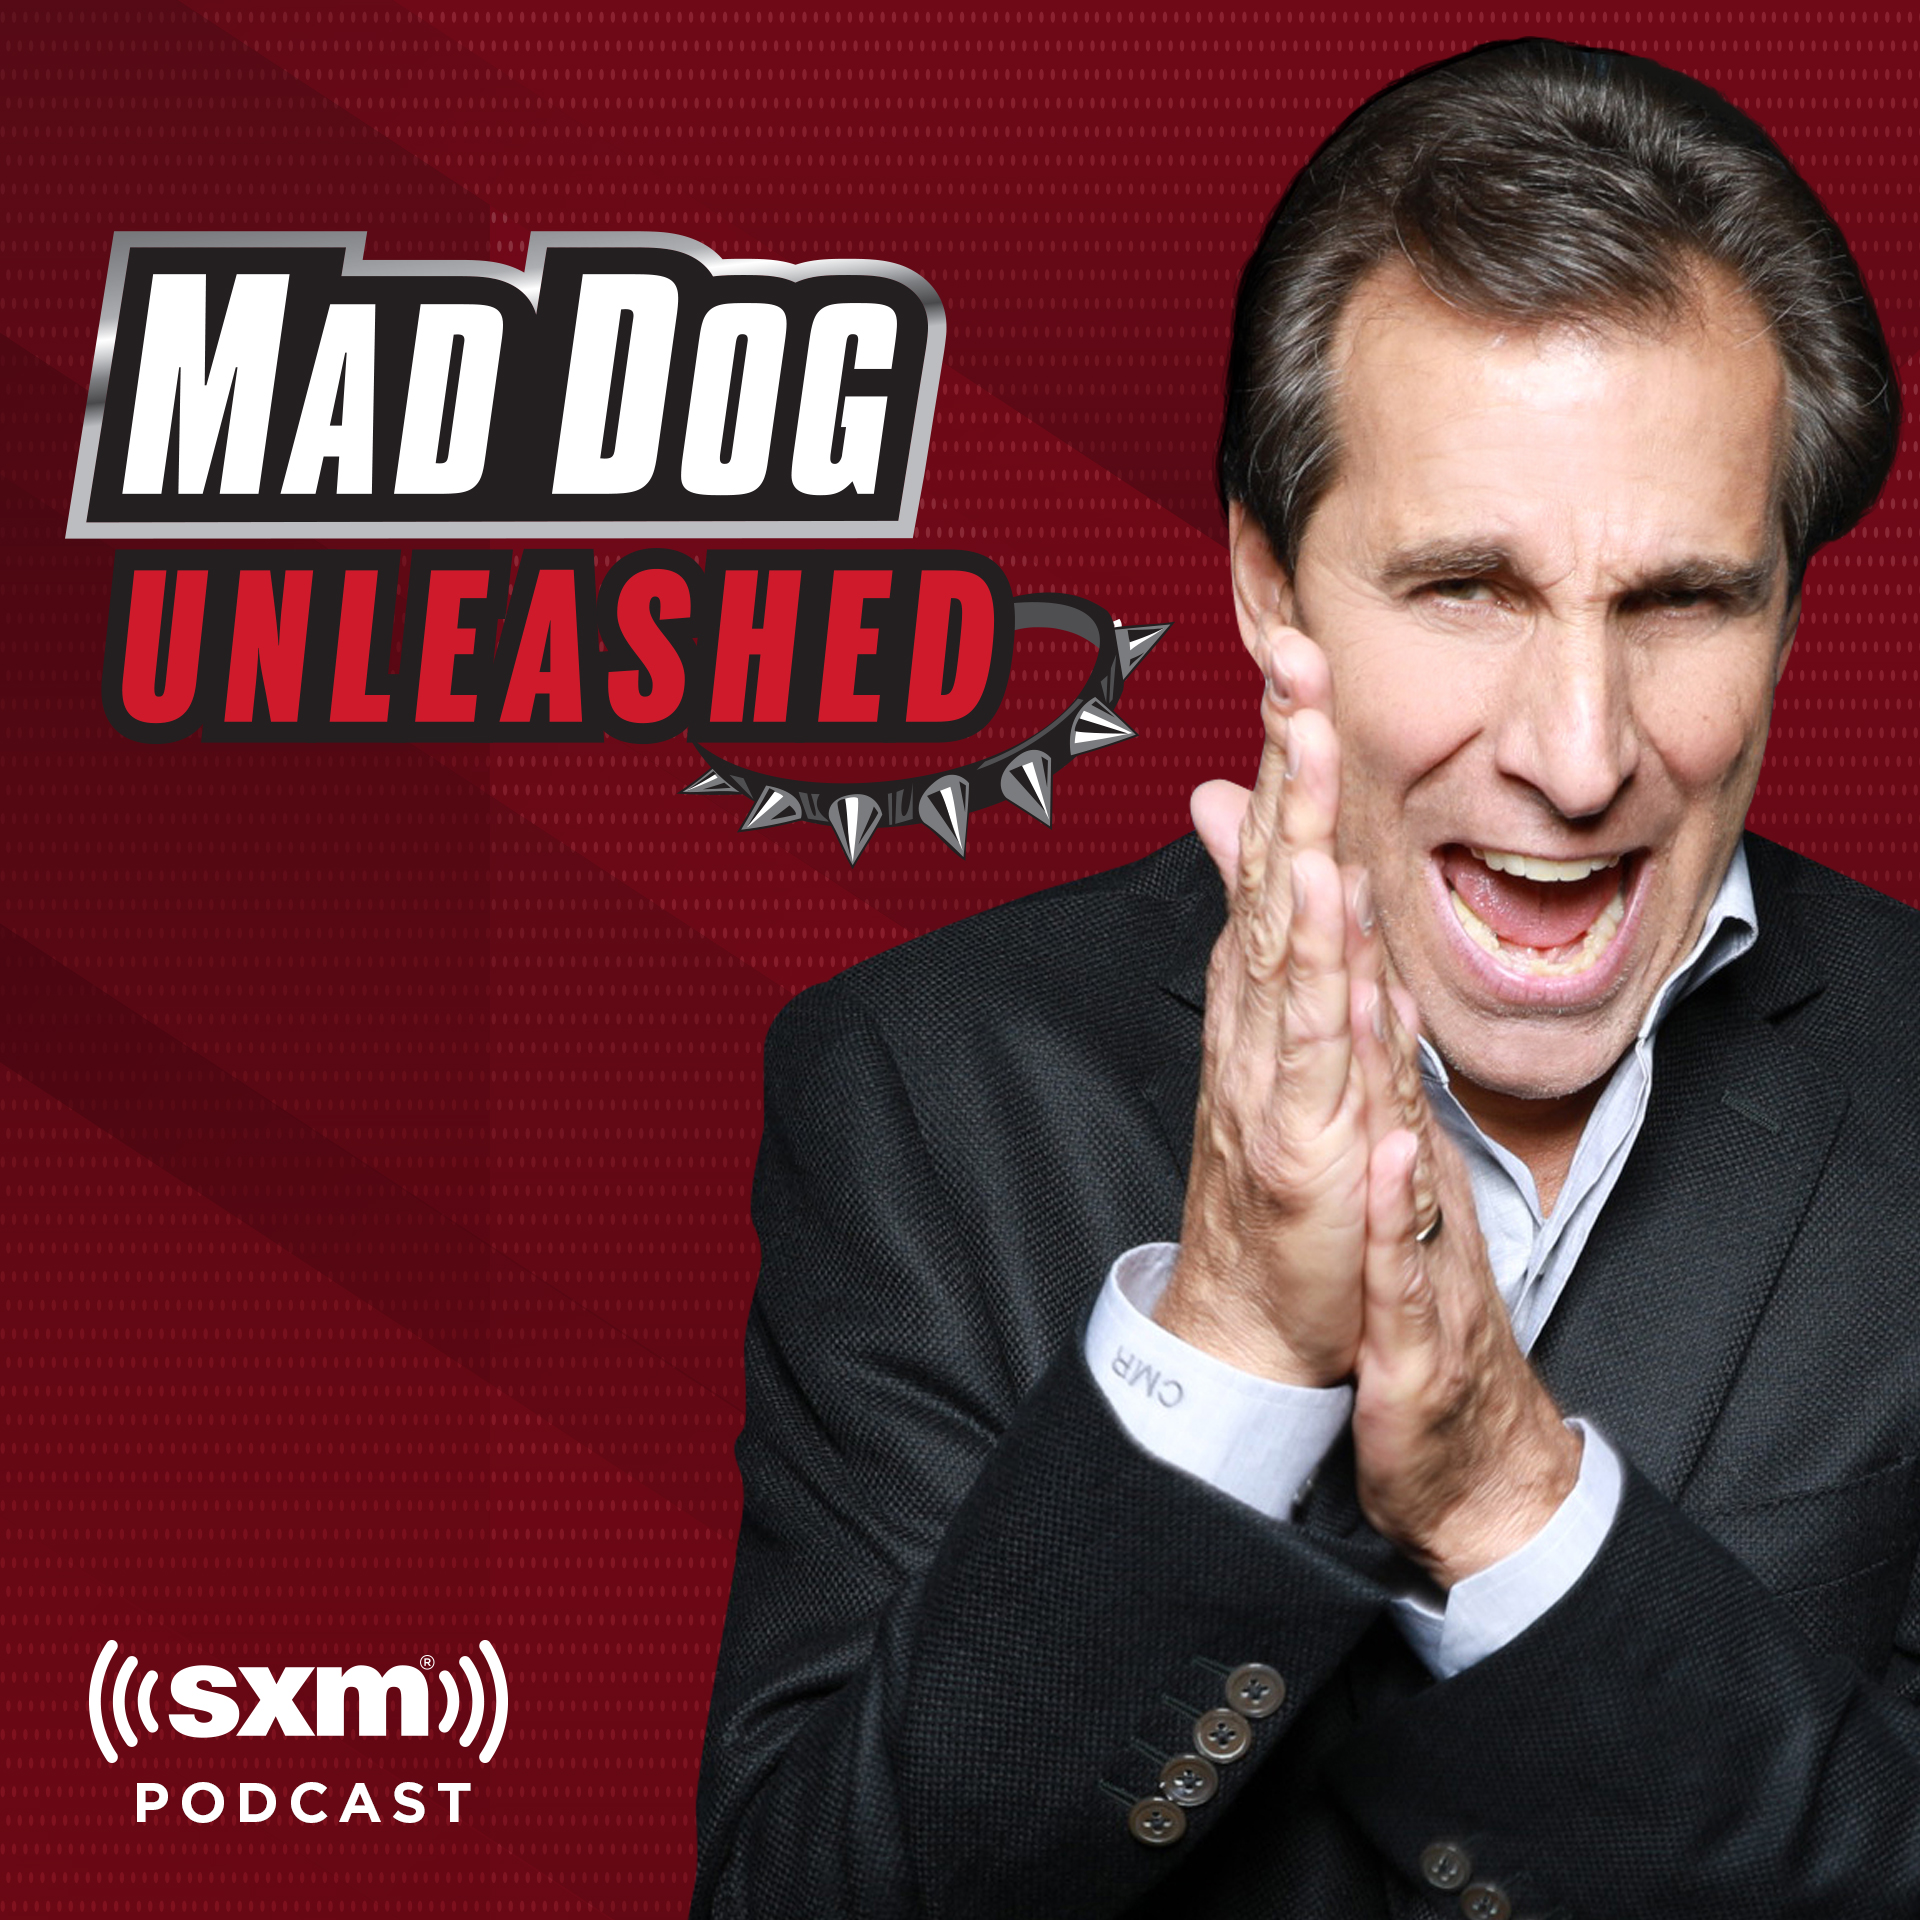 Mad Dog Unleashed poster image